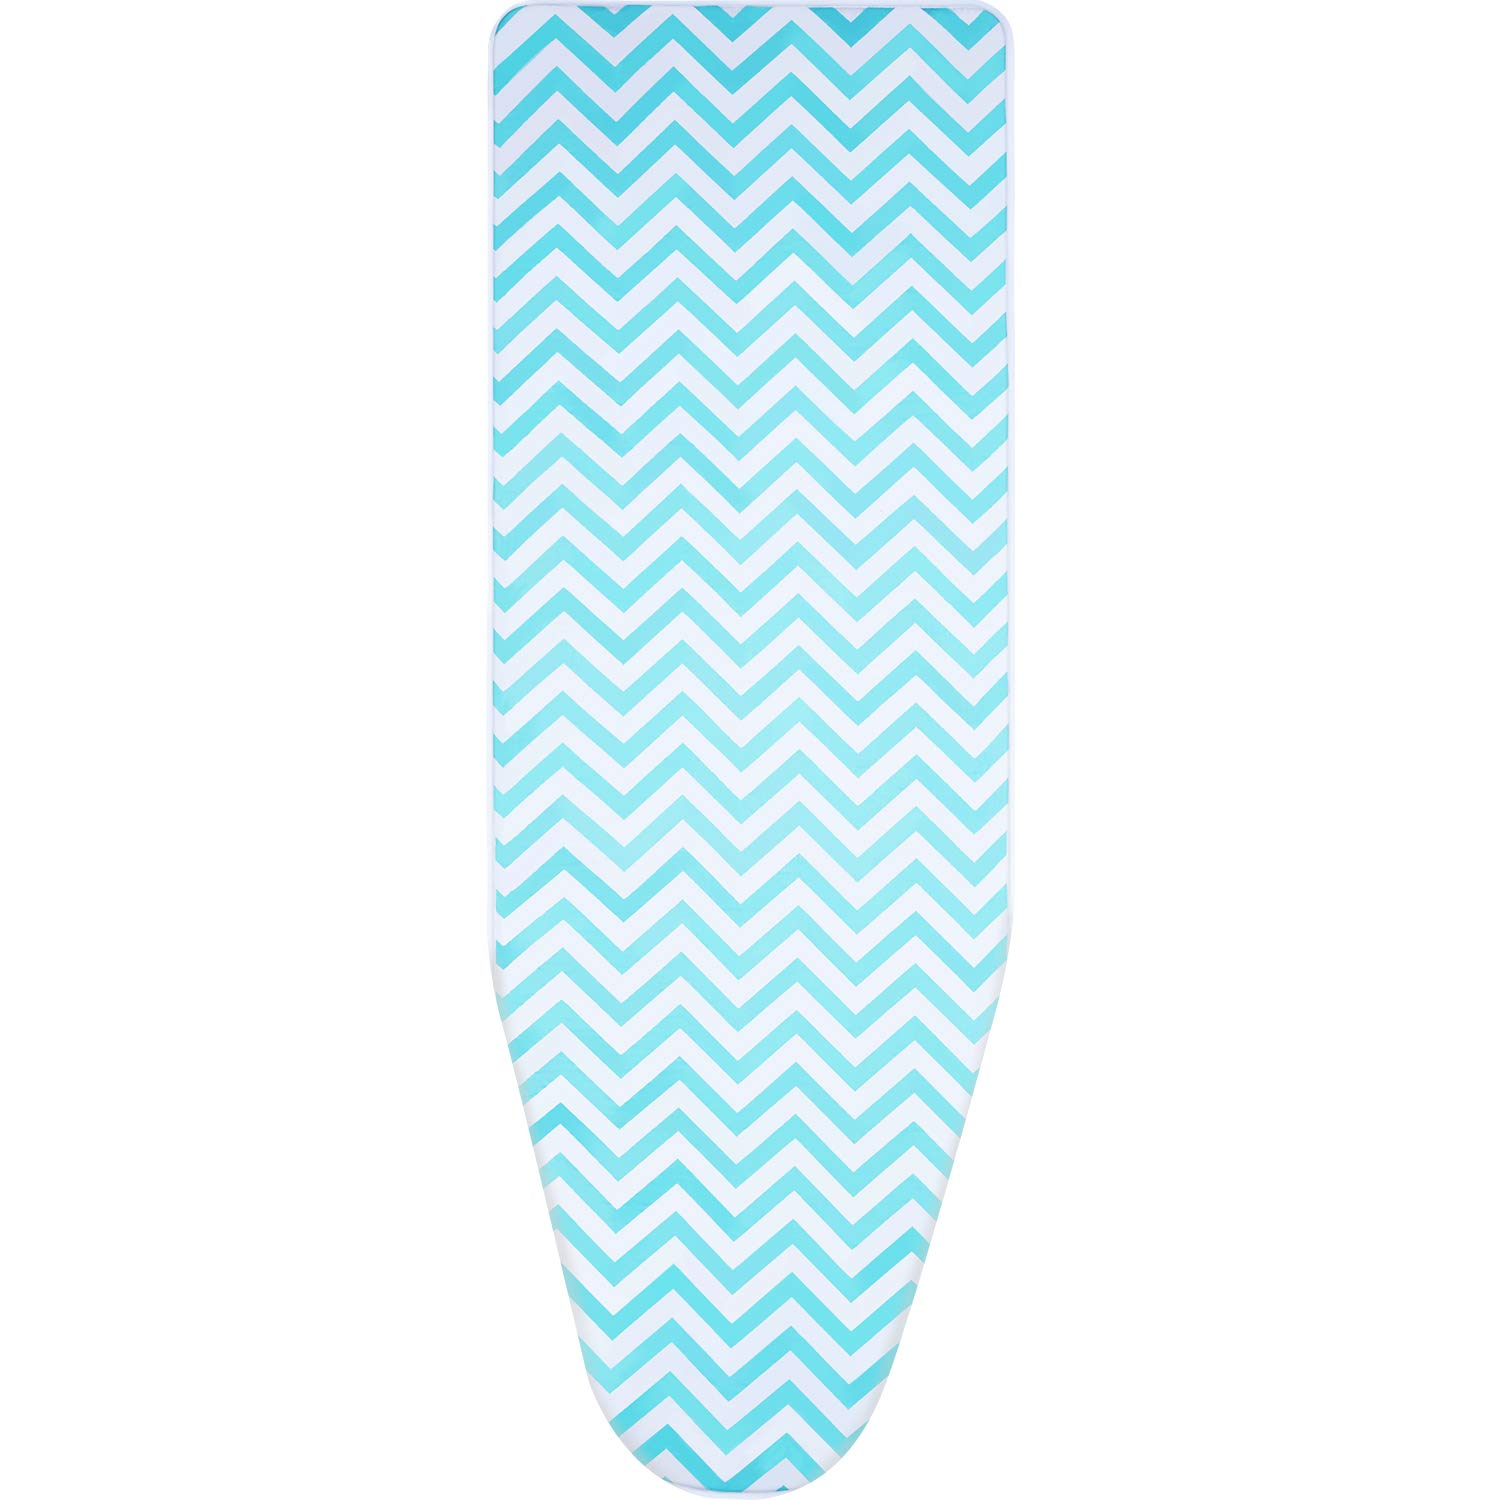 Boao 150 x 50 cm Cotton Ironing Board Cover with 2 mm Foam, Fits for Board of 119-138 cm Length and 35-45 cm Width (Green)